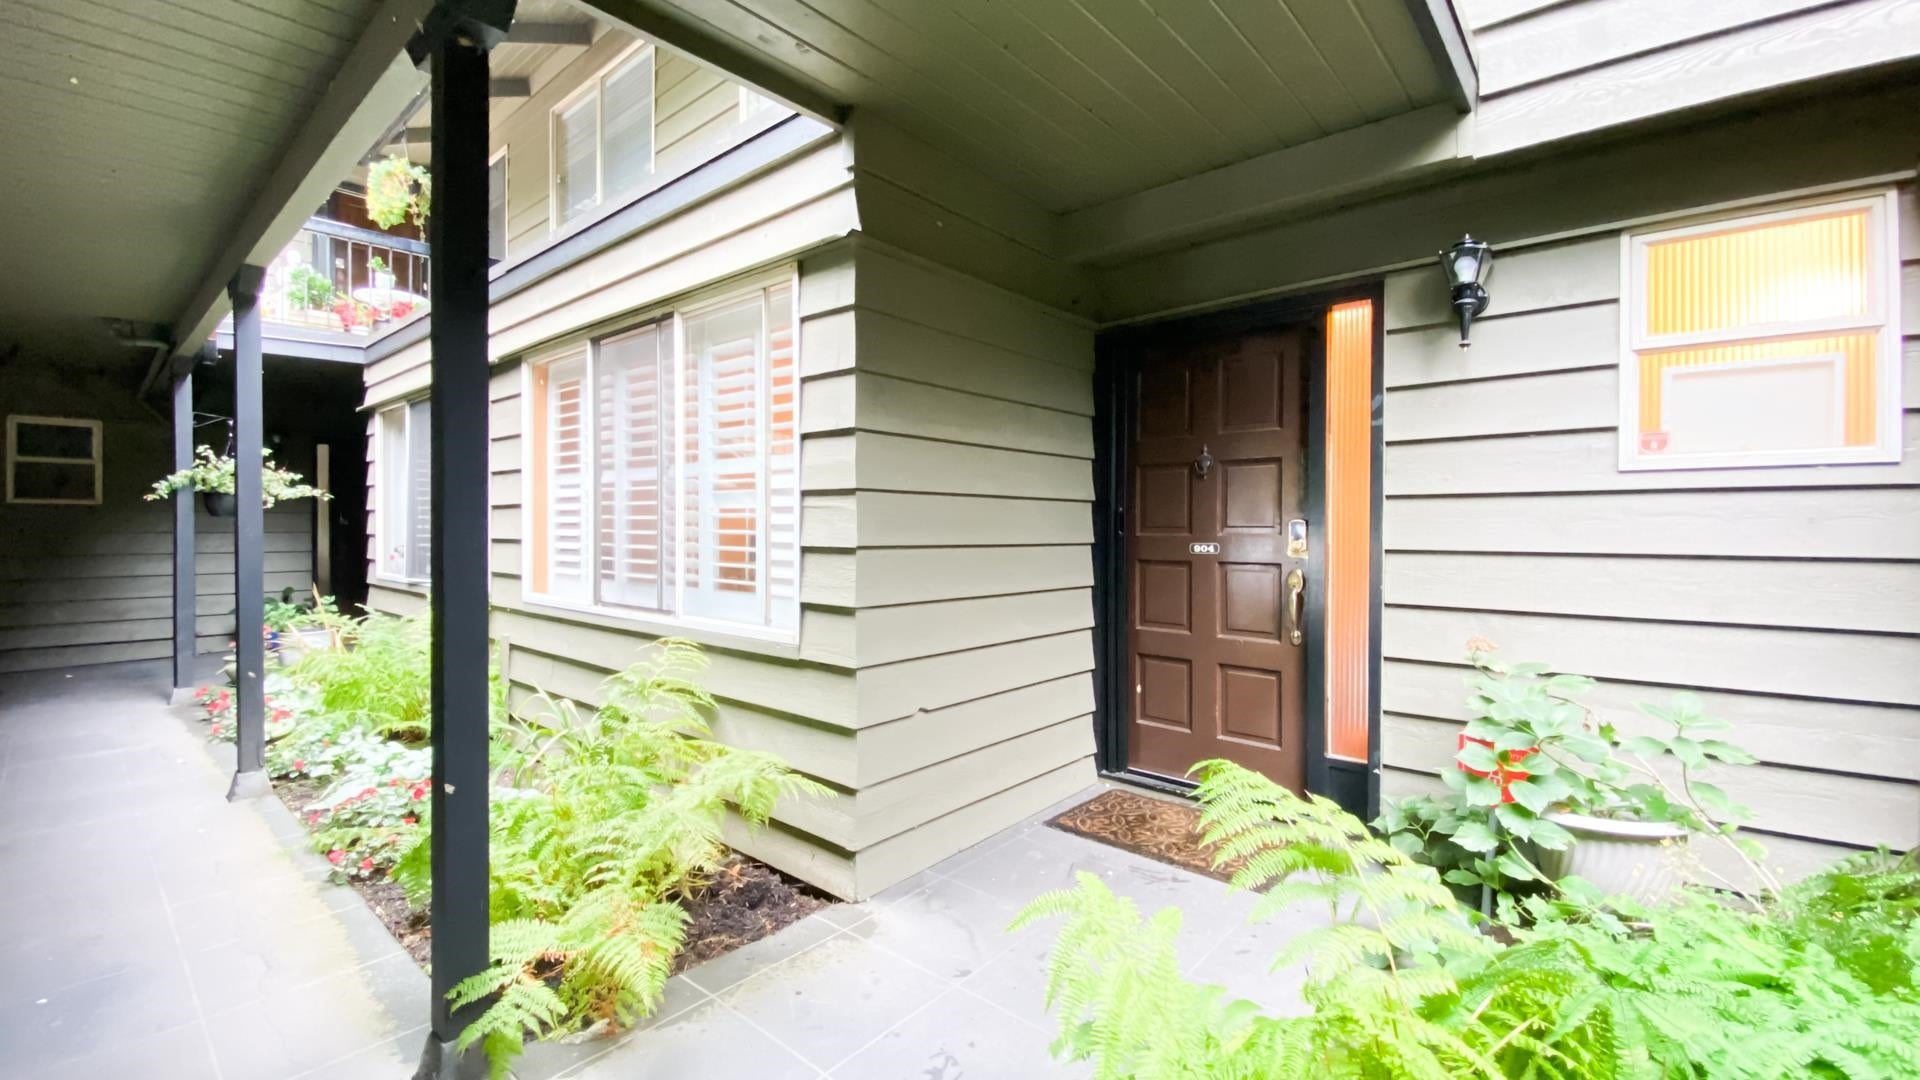 904 235 KEITH ROAD - Cedardale Townhouse for sale, 3 Bedrooms (R2615420) - #29